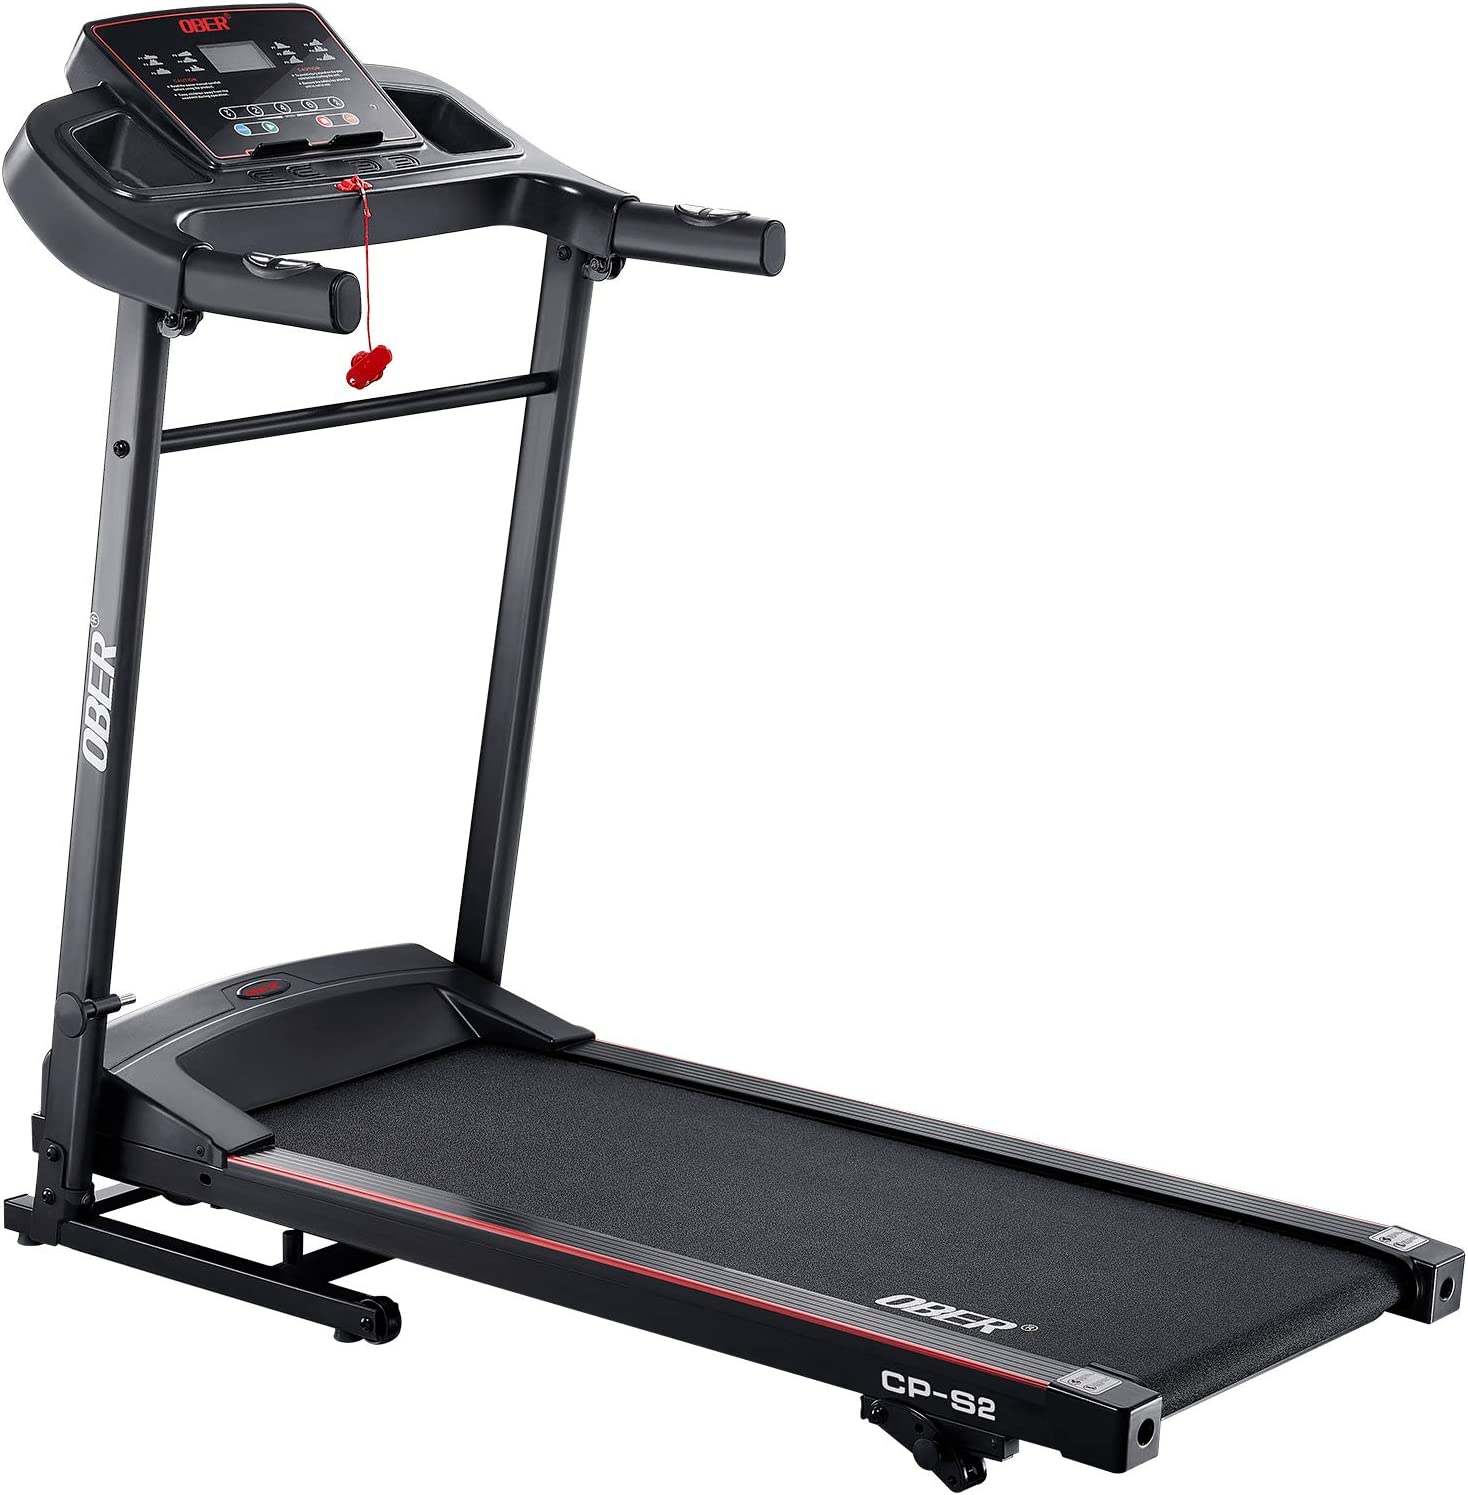 Ober Folding Treadmills for Home with Incline, Portable Electric Motorized Treadmills Jogging Walking Running Machine for Home/Gym/Office/Workout/Exercise/Fitness/Cardio/Indoor